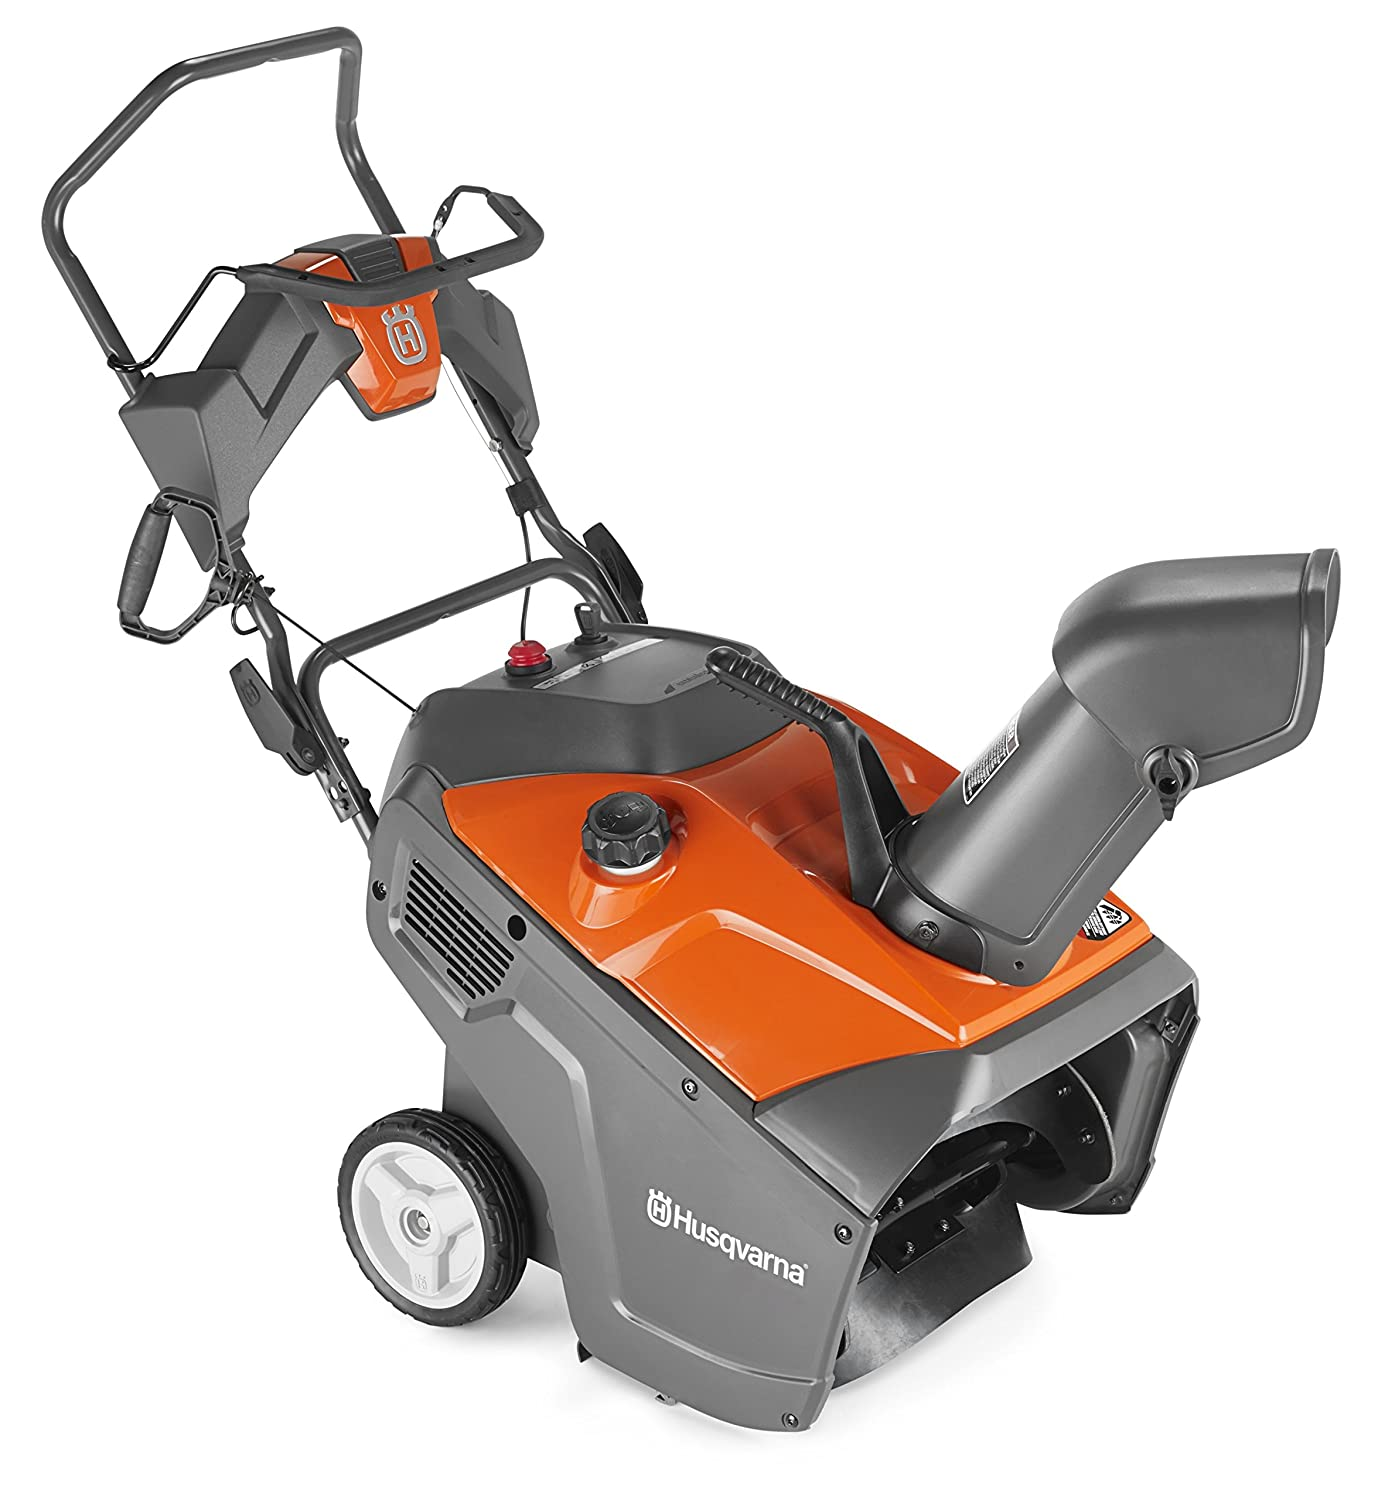 Top 10 Best Snow Thrower (2020 Reviews & Buying Guide) 2